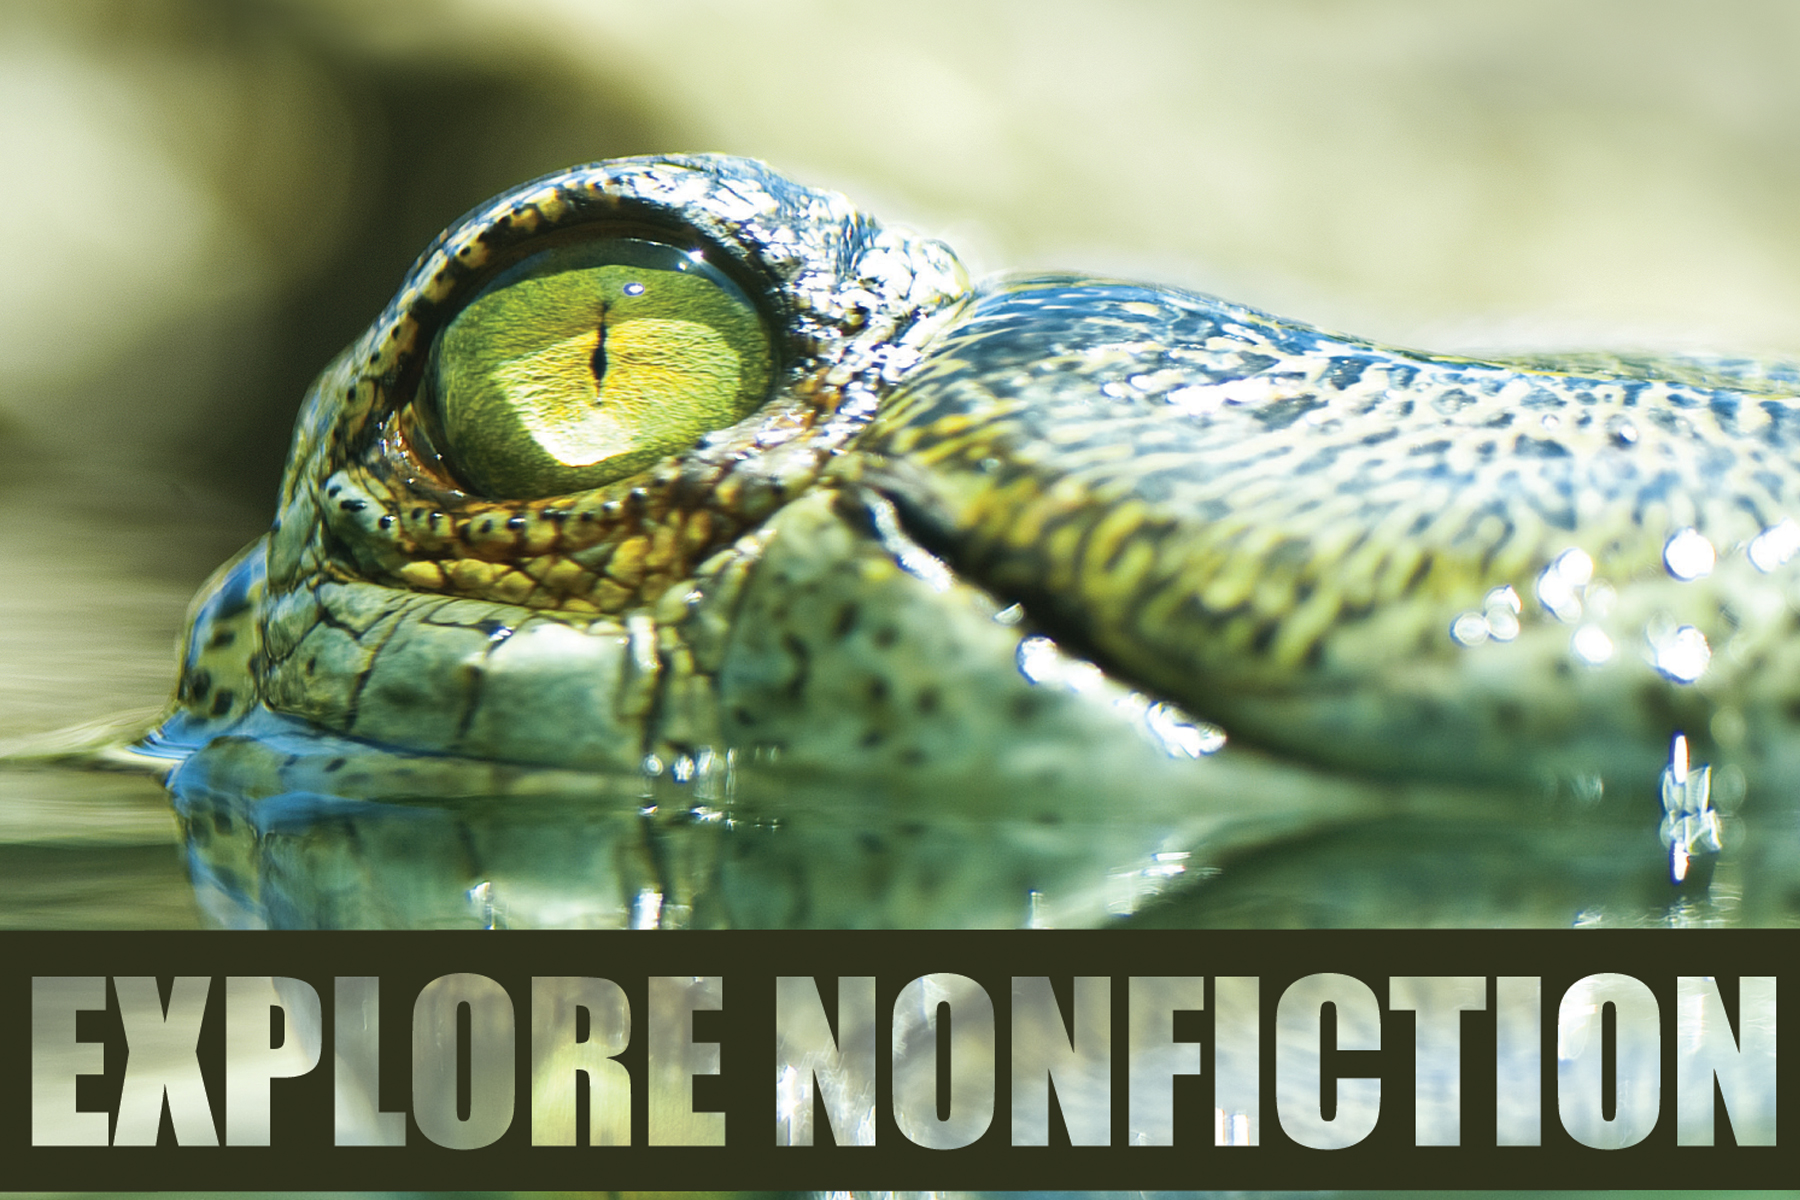 nonfiction books for kids and other activities